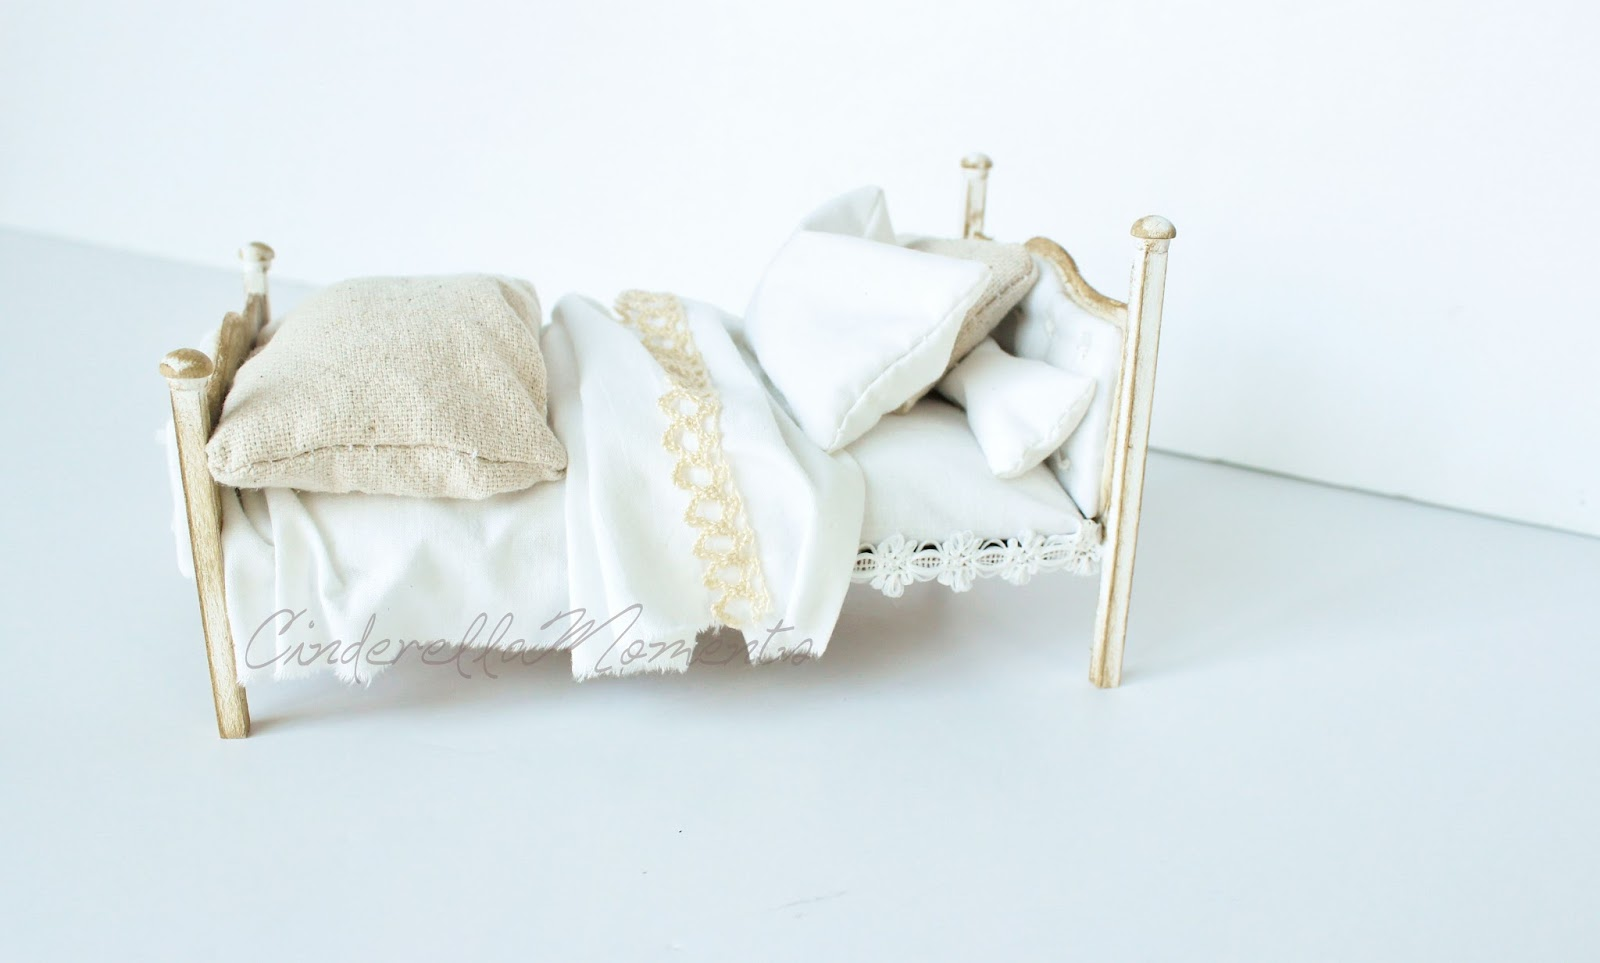 Cinderella Moments Dollhouse Upholstered Bed Tutorial